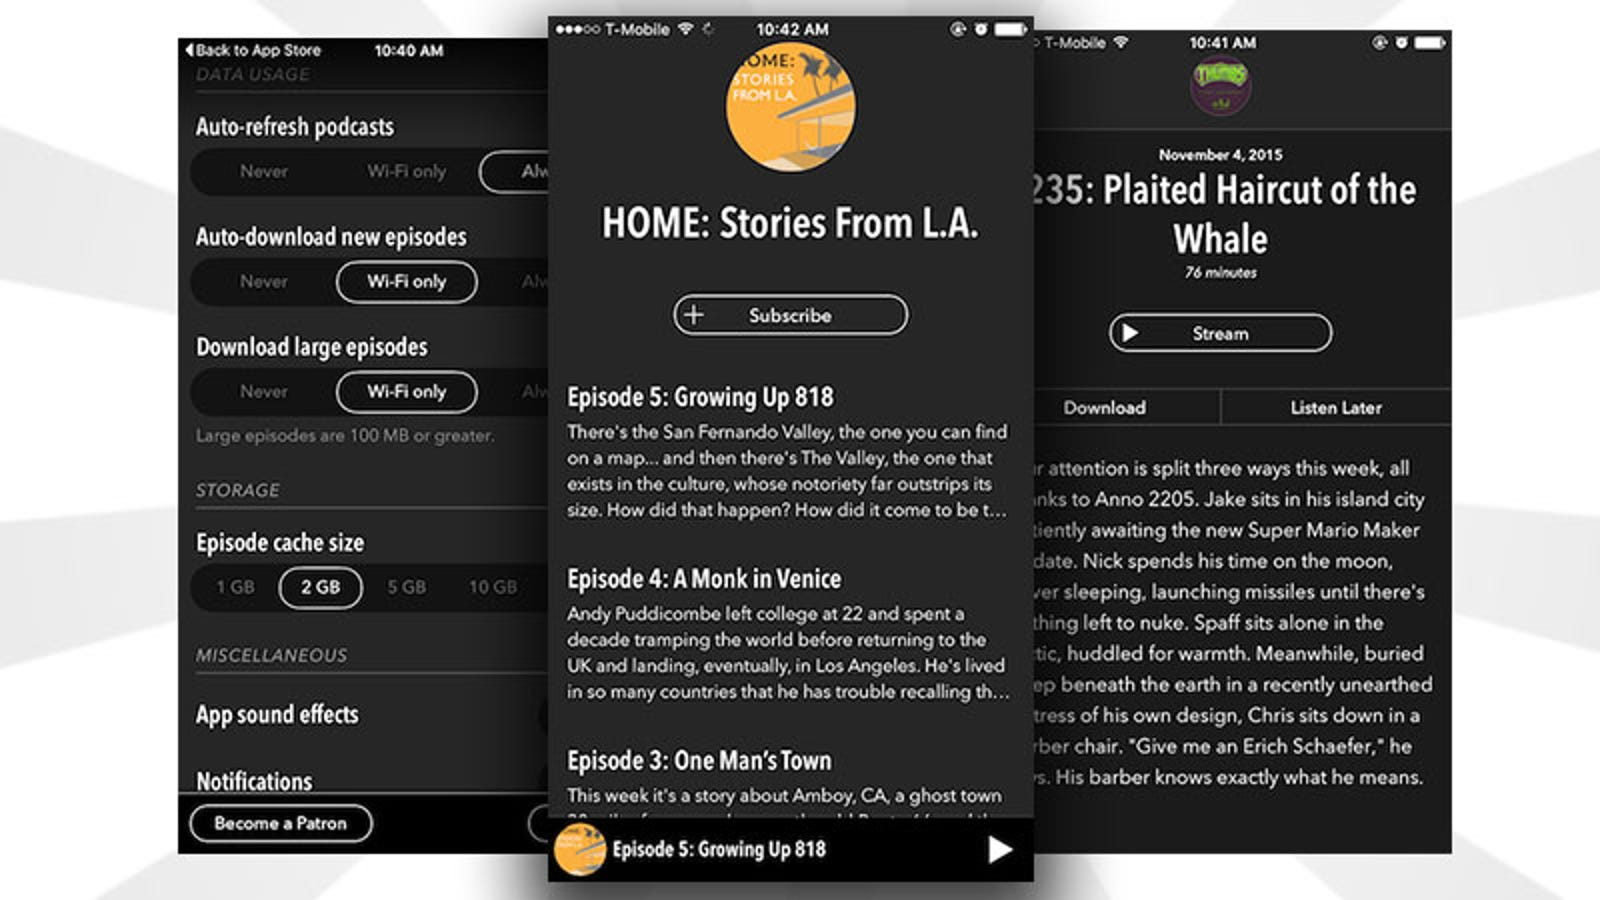 Castro, the Simplest iOS Podcast Manager, Adds iOS 9 Features and